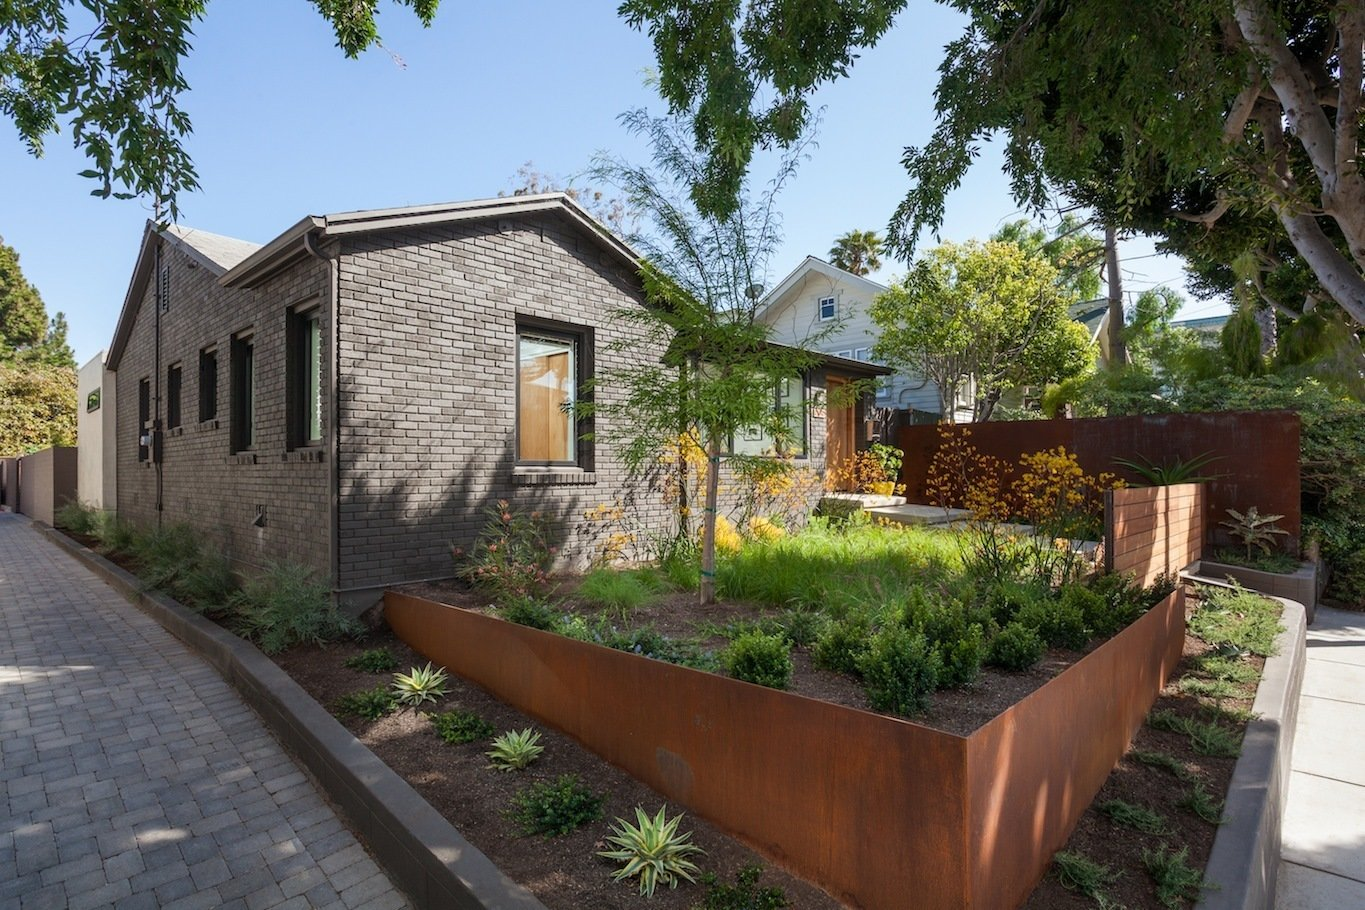 Outdoor, Front Yard, Garden, Side Yard, Trees, Grass, Hardscapes, Gardens, Raised Planters, Walkways, Wood Fences, Wall, Pavers Patio, Porch, Deck, Horizontal Fences, Wall, and Metal Fences, Wall Front yard entry at driveway apron with corten landscape walls and gate beyond  Ashland Residence by Hsu McCullough